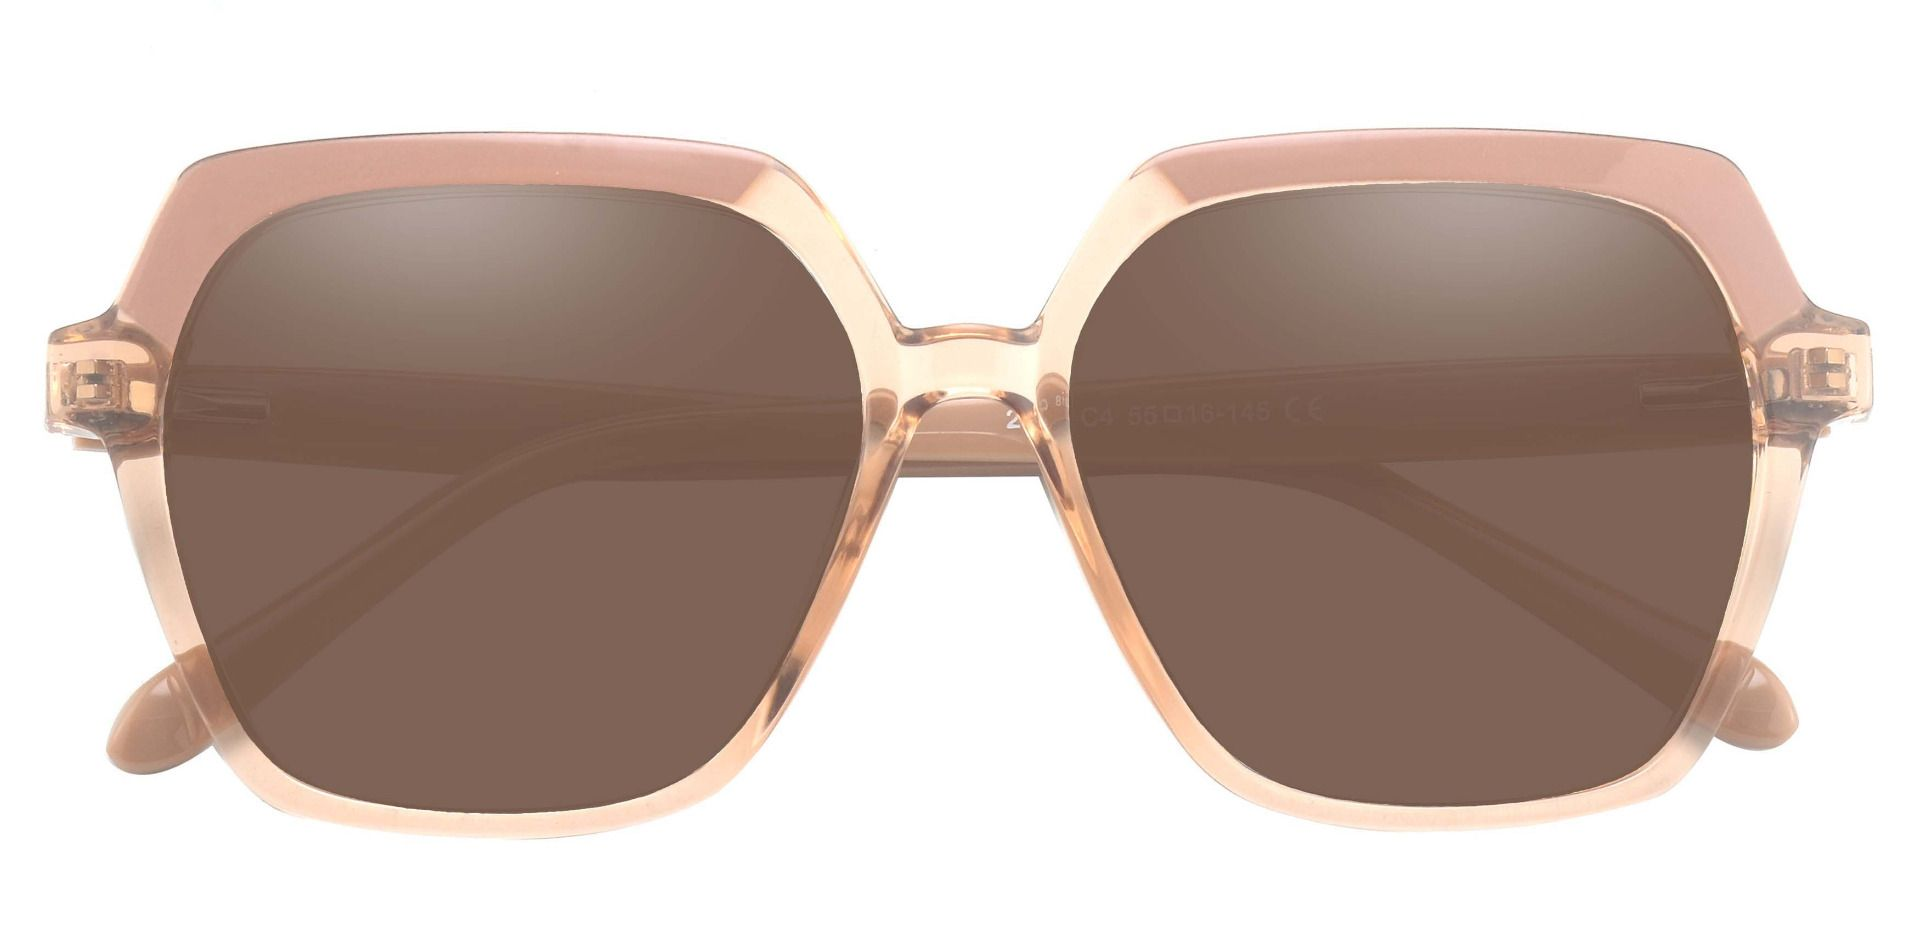 Regent Geometric Lined Bifocal Sunglasses - Brown Frame With Brown Lenses